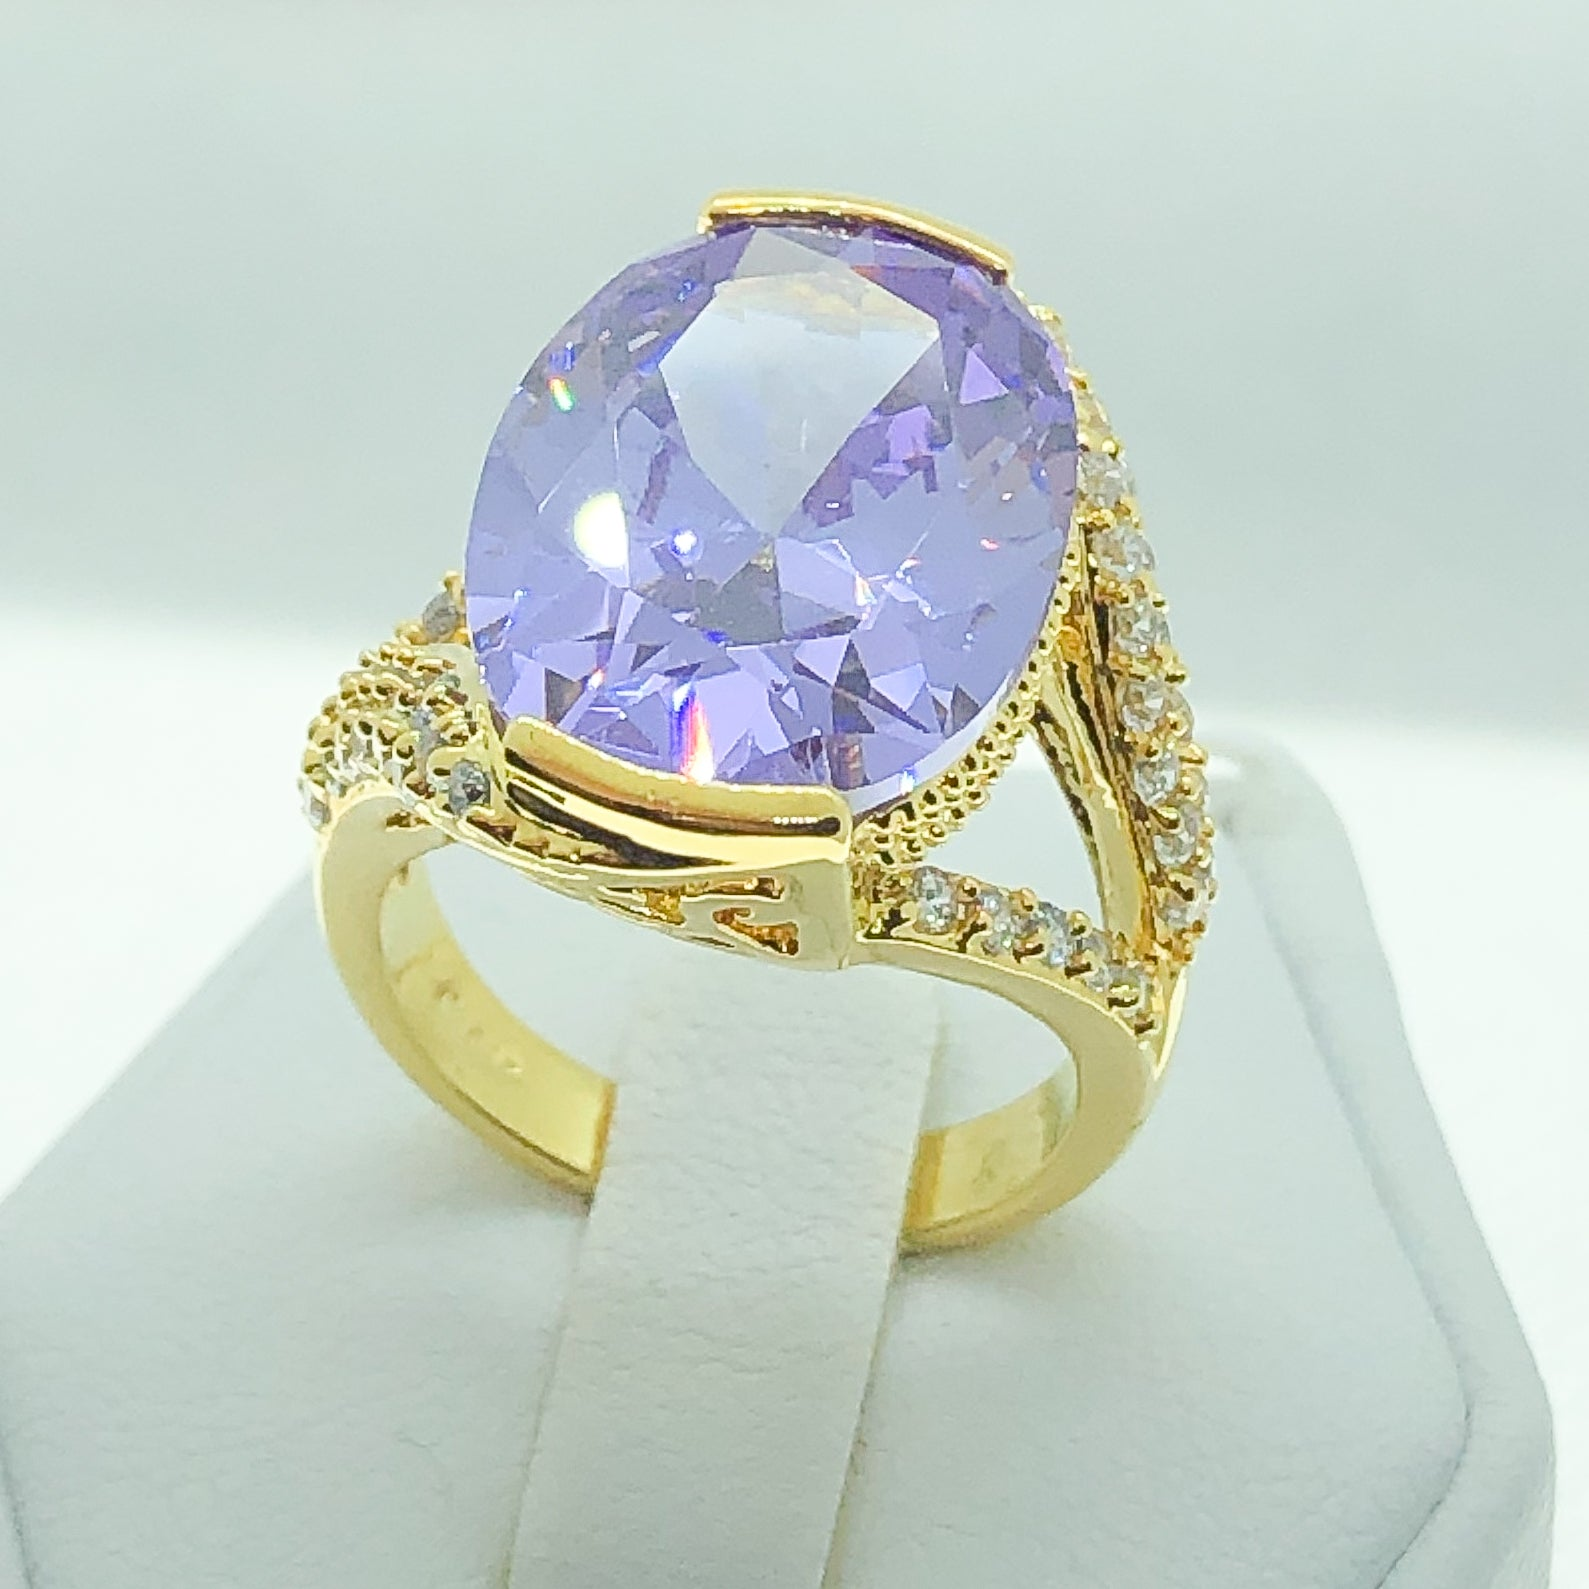 ID:R4601 Women 18K Yellow Gold GF Fashion Jewelry Splendid Big Amethyst Center Gemstone With Accent Cocktail Ring